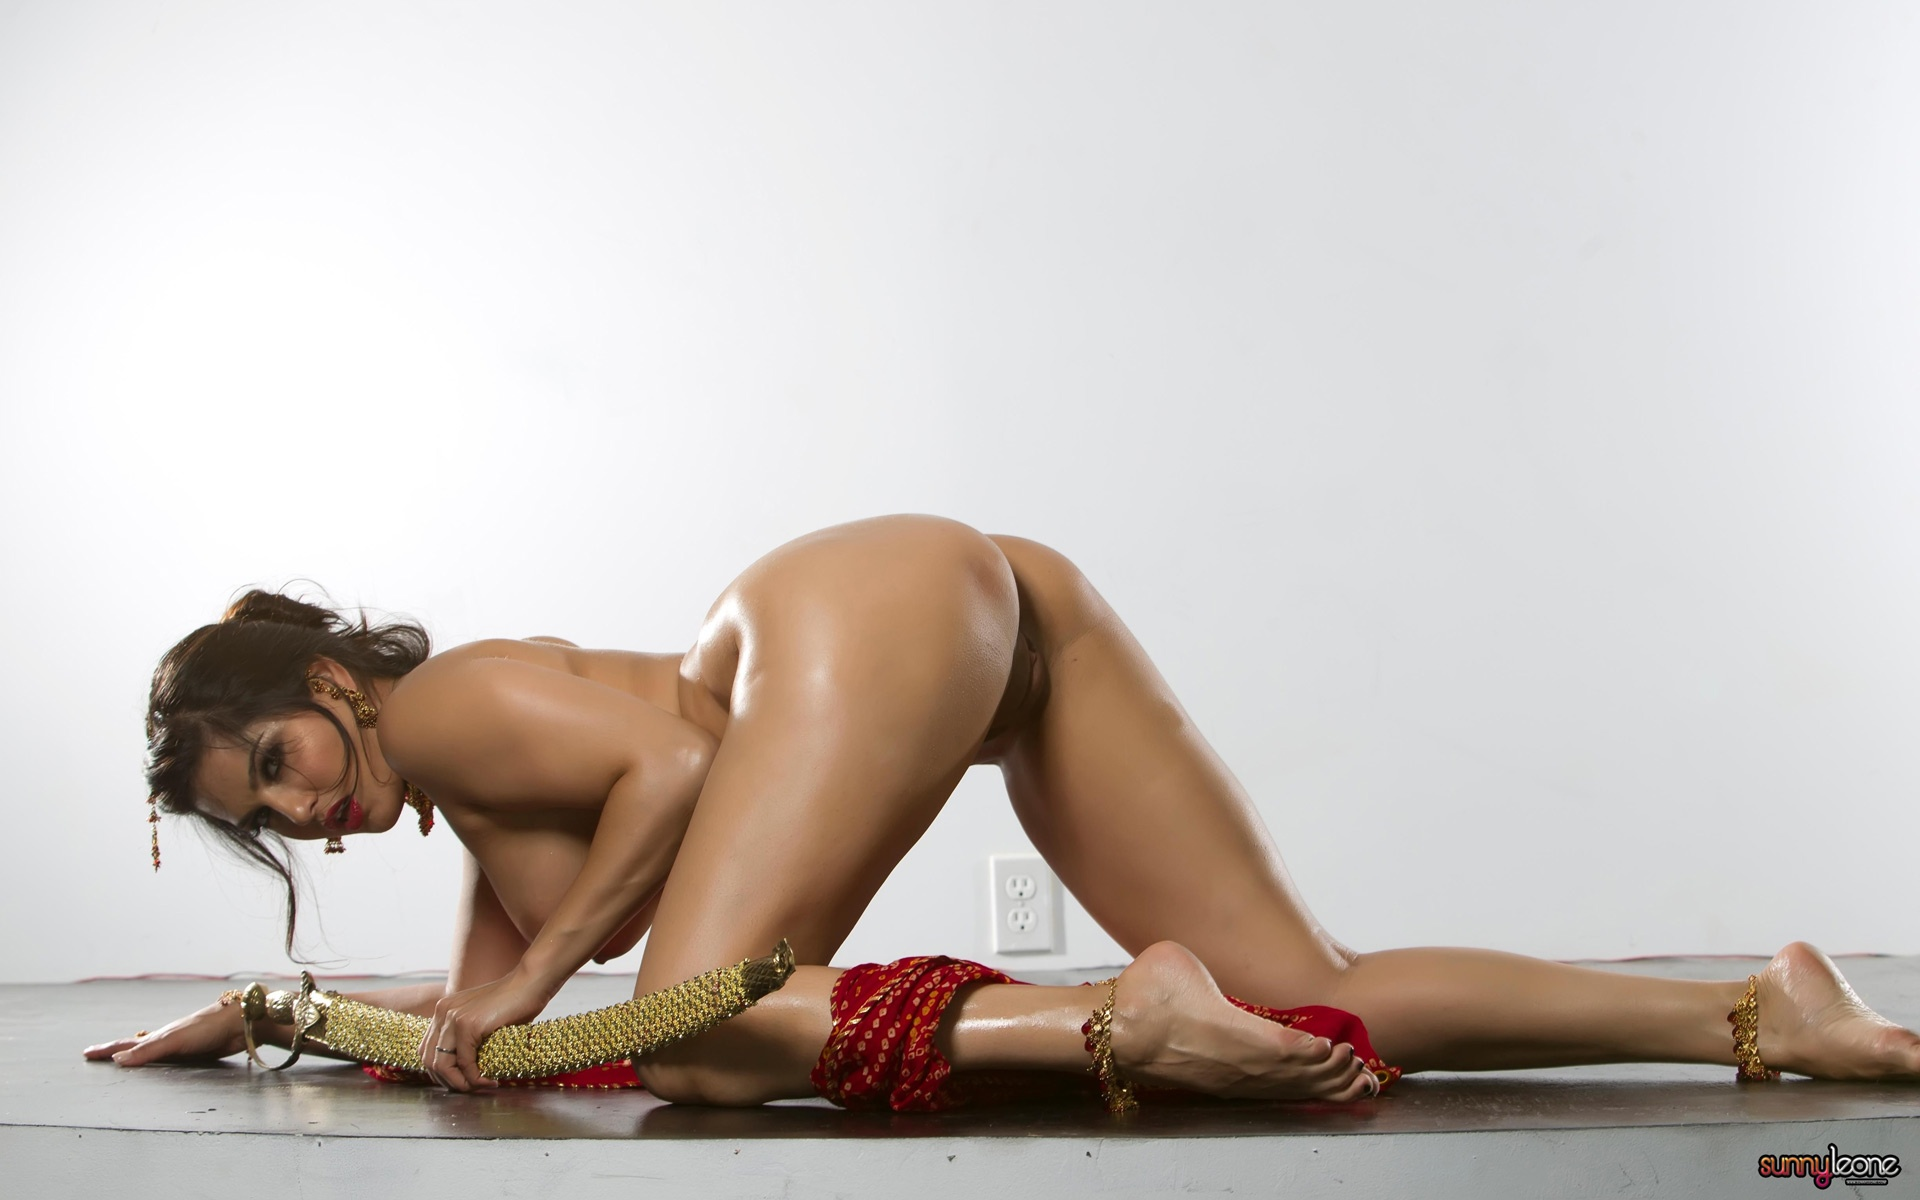 Healthy woman xxx hd pic nackt images